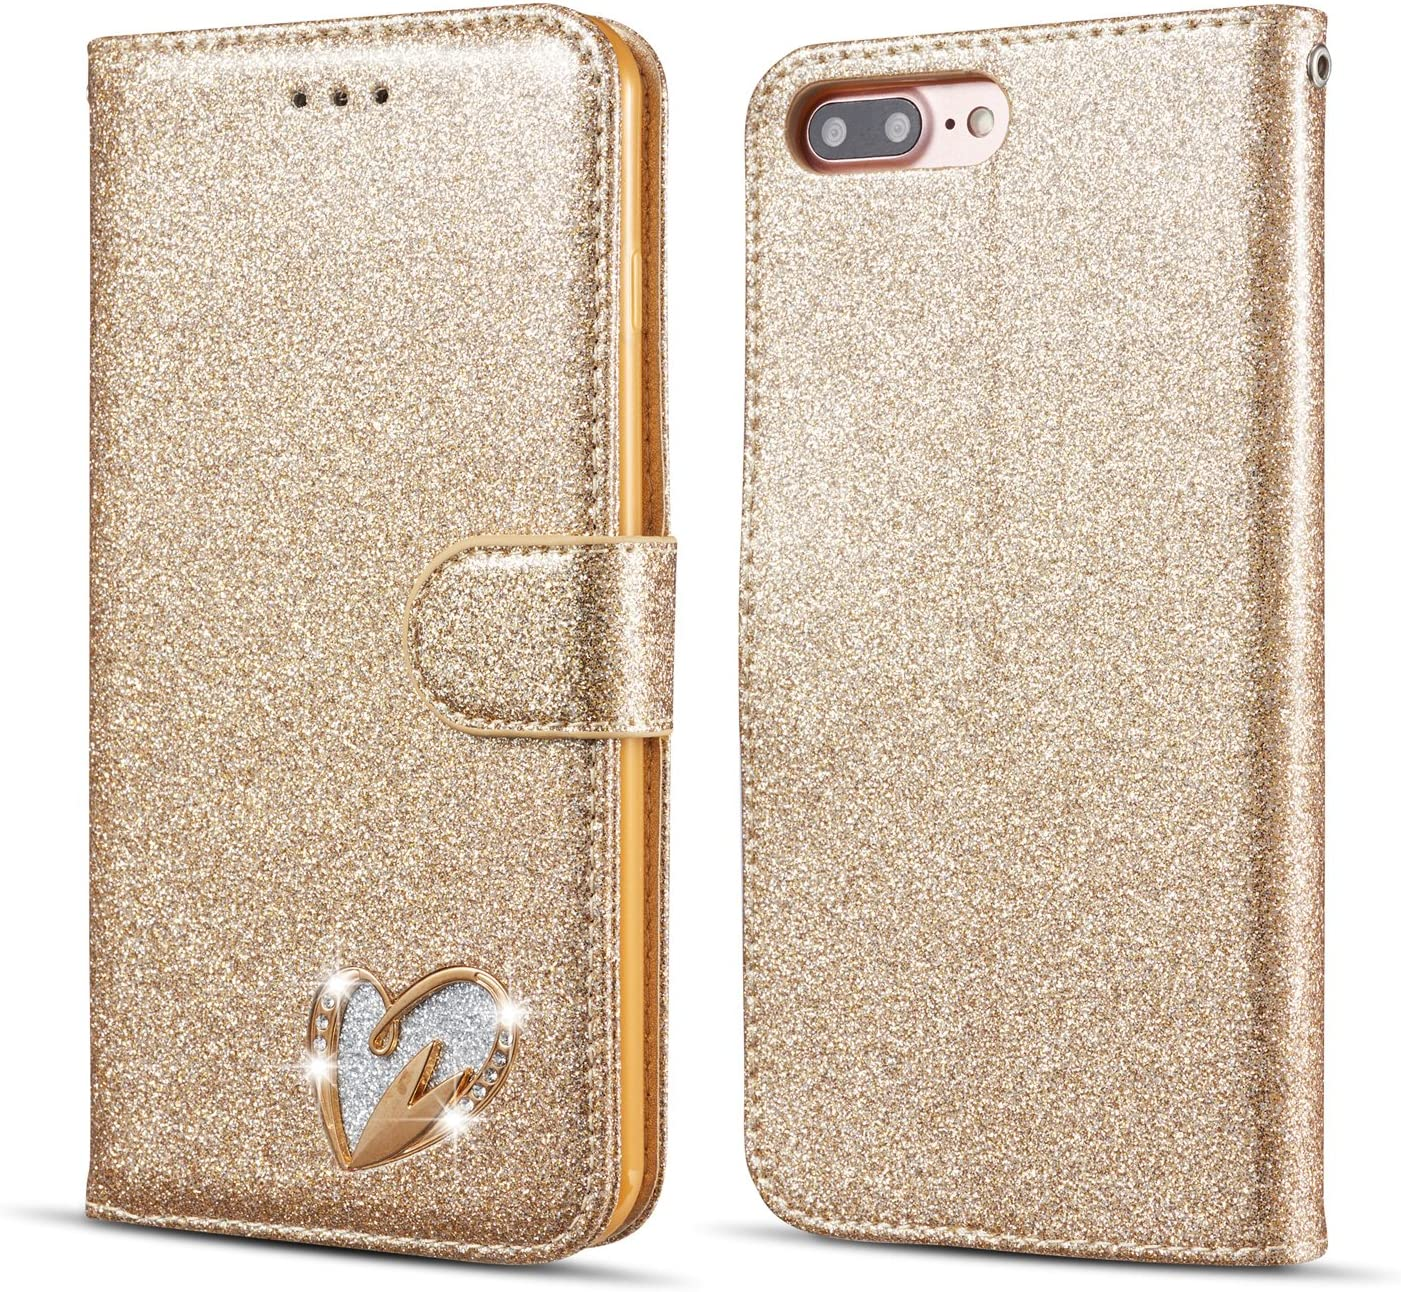 QLTYPRI iPhone 5S Case iPhone SE Case Wallet Case Bling Shiny Glitter Flip Folio Case Full-Body Protective Cover Card Slots Magnetic Closure Kickstand Wrist Strap for Women Girls - Gold